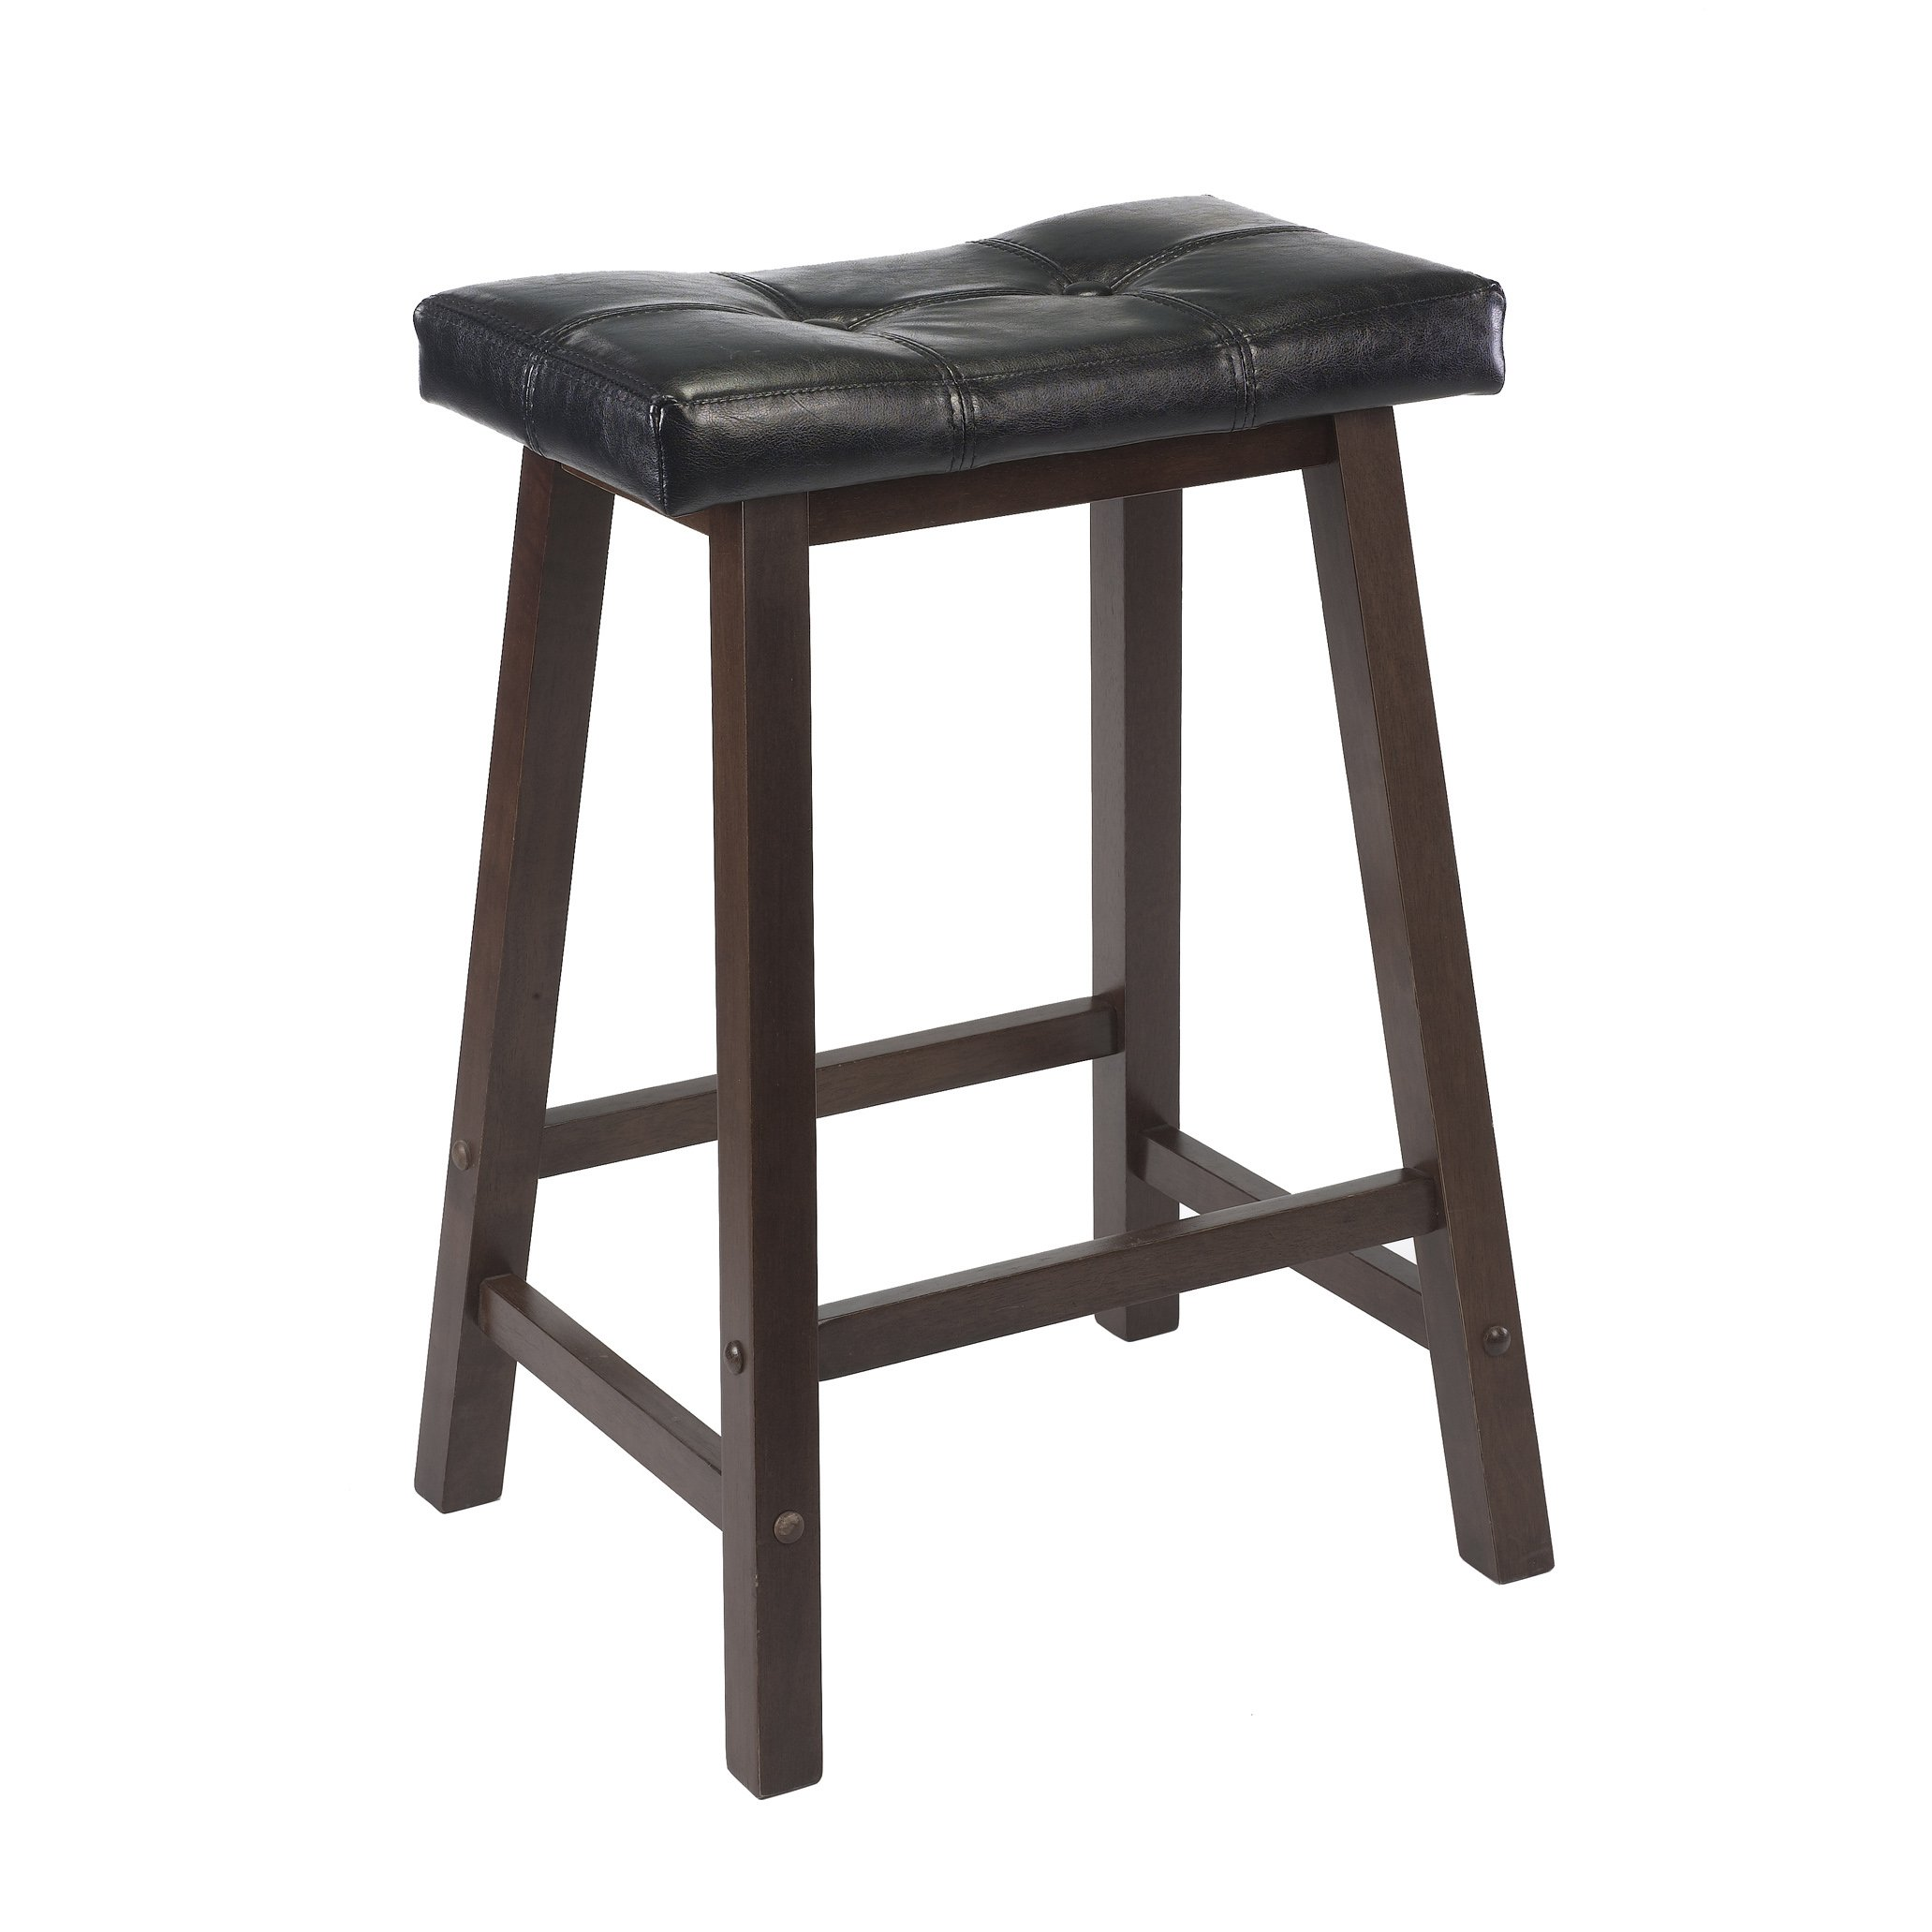 Winsome 94064 Mona Stool, 24'', Antique Walnut by Winsome